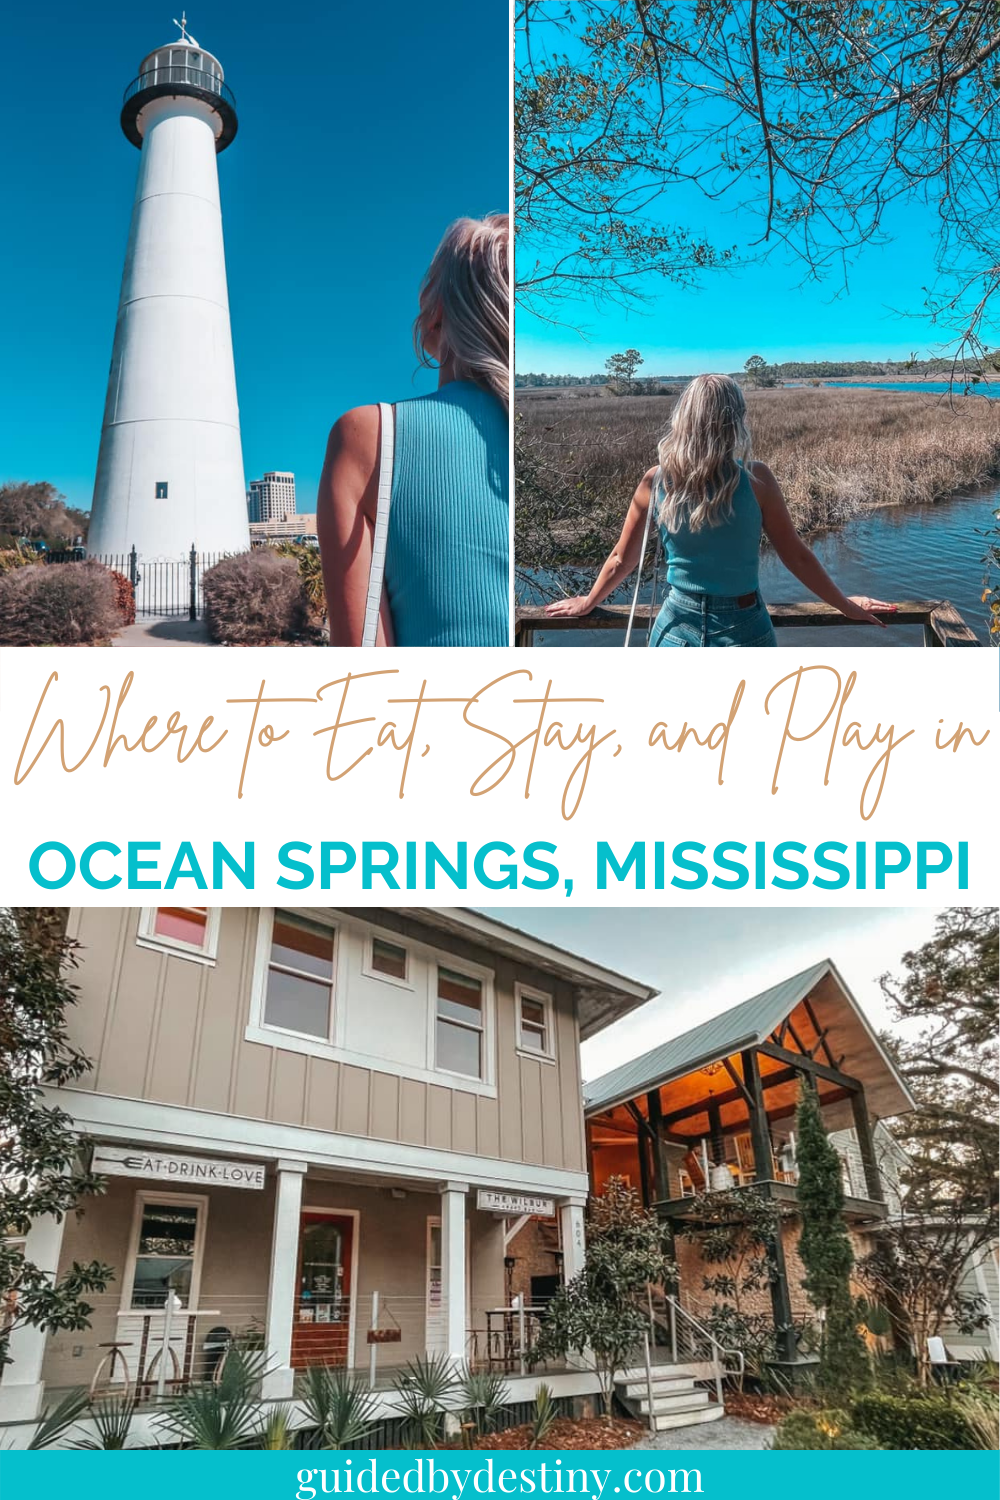 Where to eat, stay, and play in Ocean Springs, Mississippi